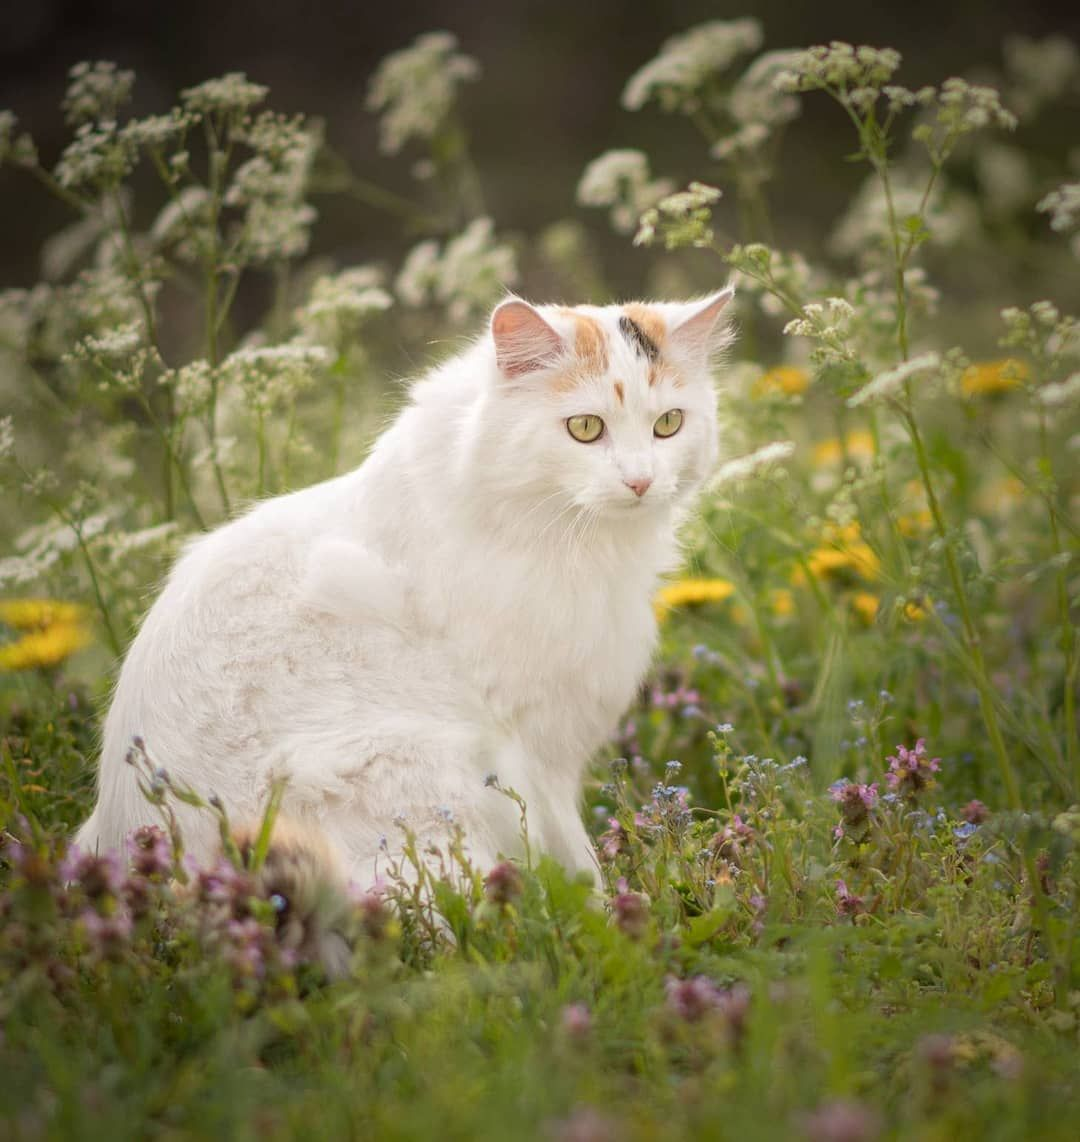 Mausi Miseli On Instagram Wherever Life Plants You Bloom With Grace Bepositive Cute Cats Kitten Pictures Tortoiseshell Tabby